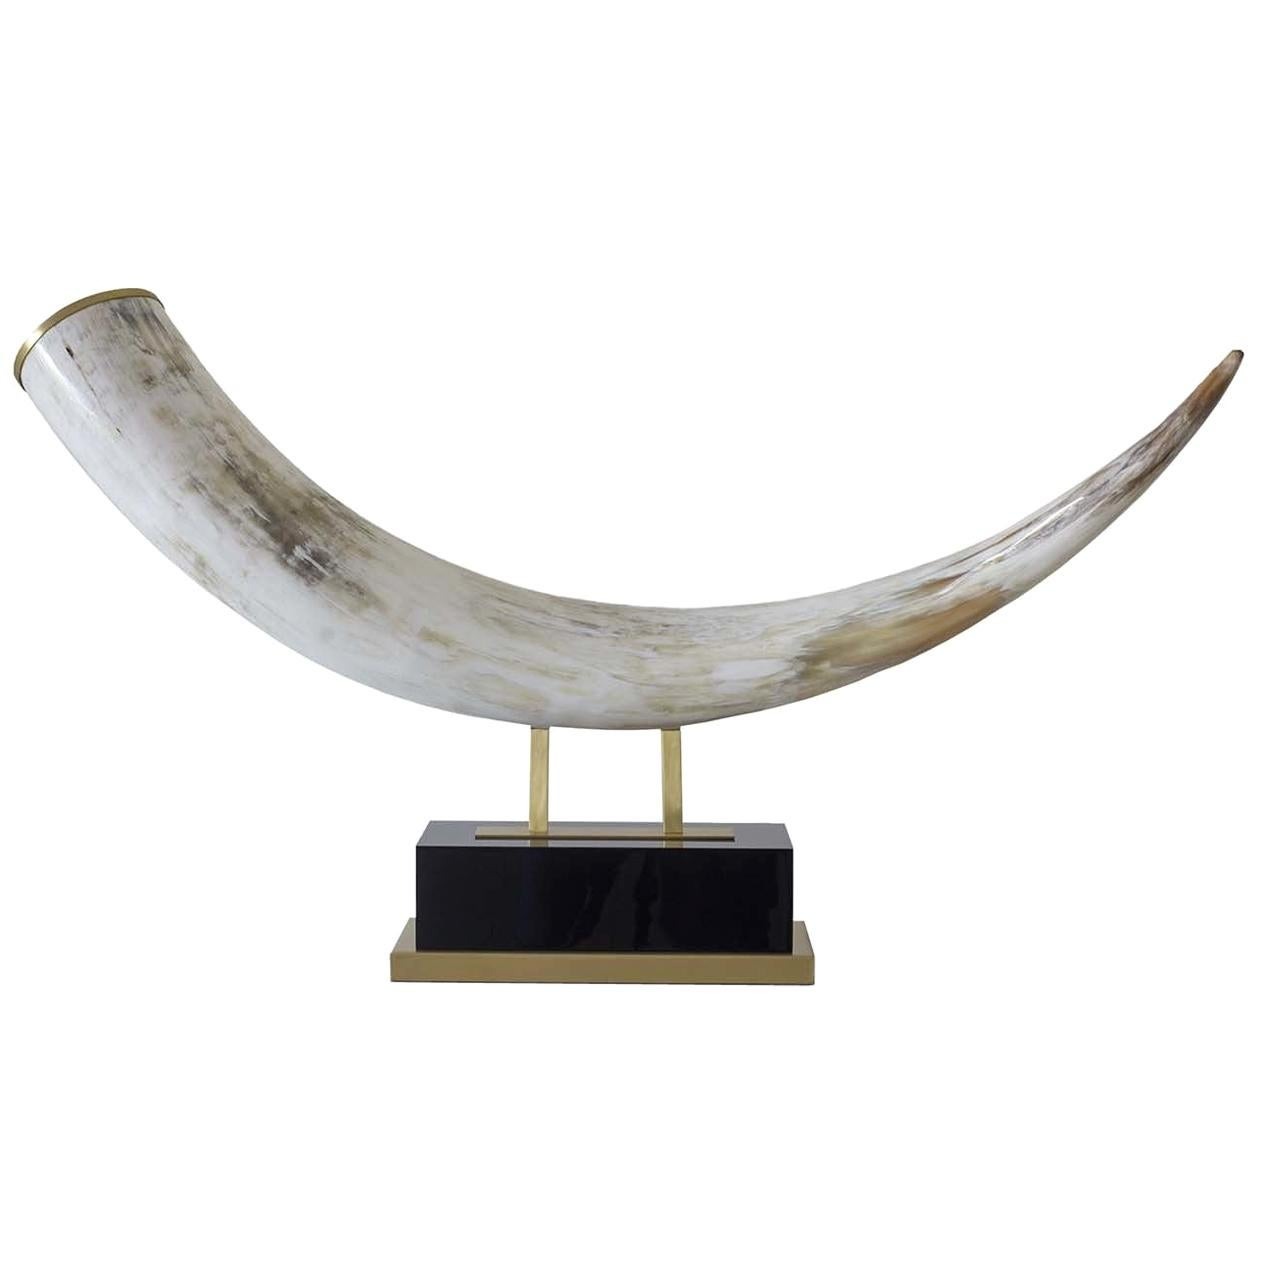 Horn Sculpture by Zanchi 1952